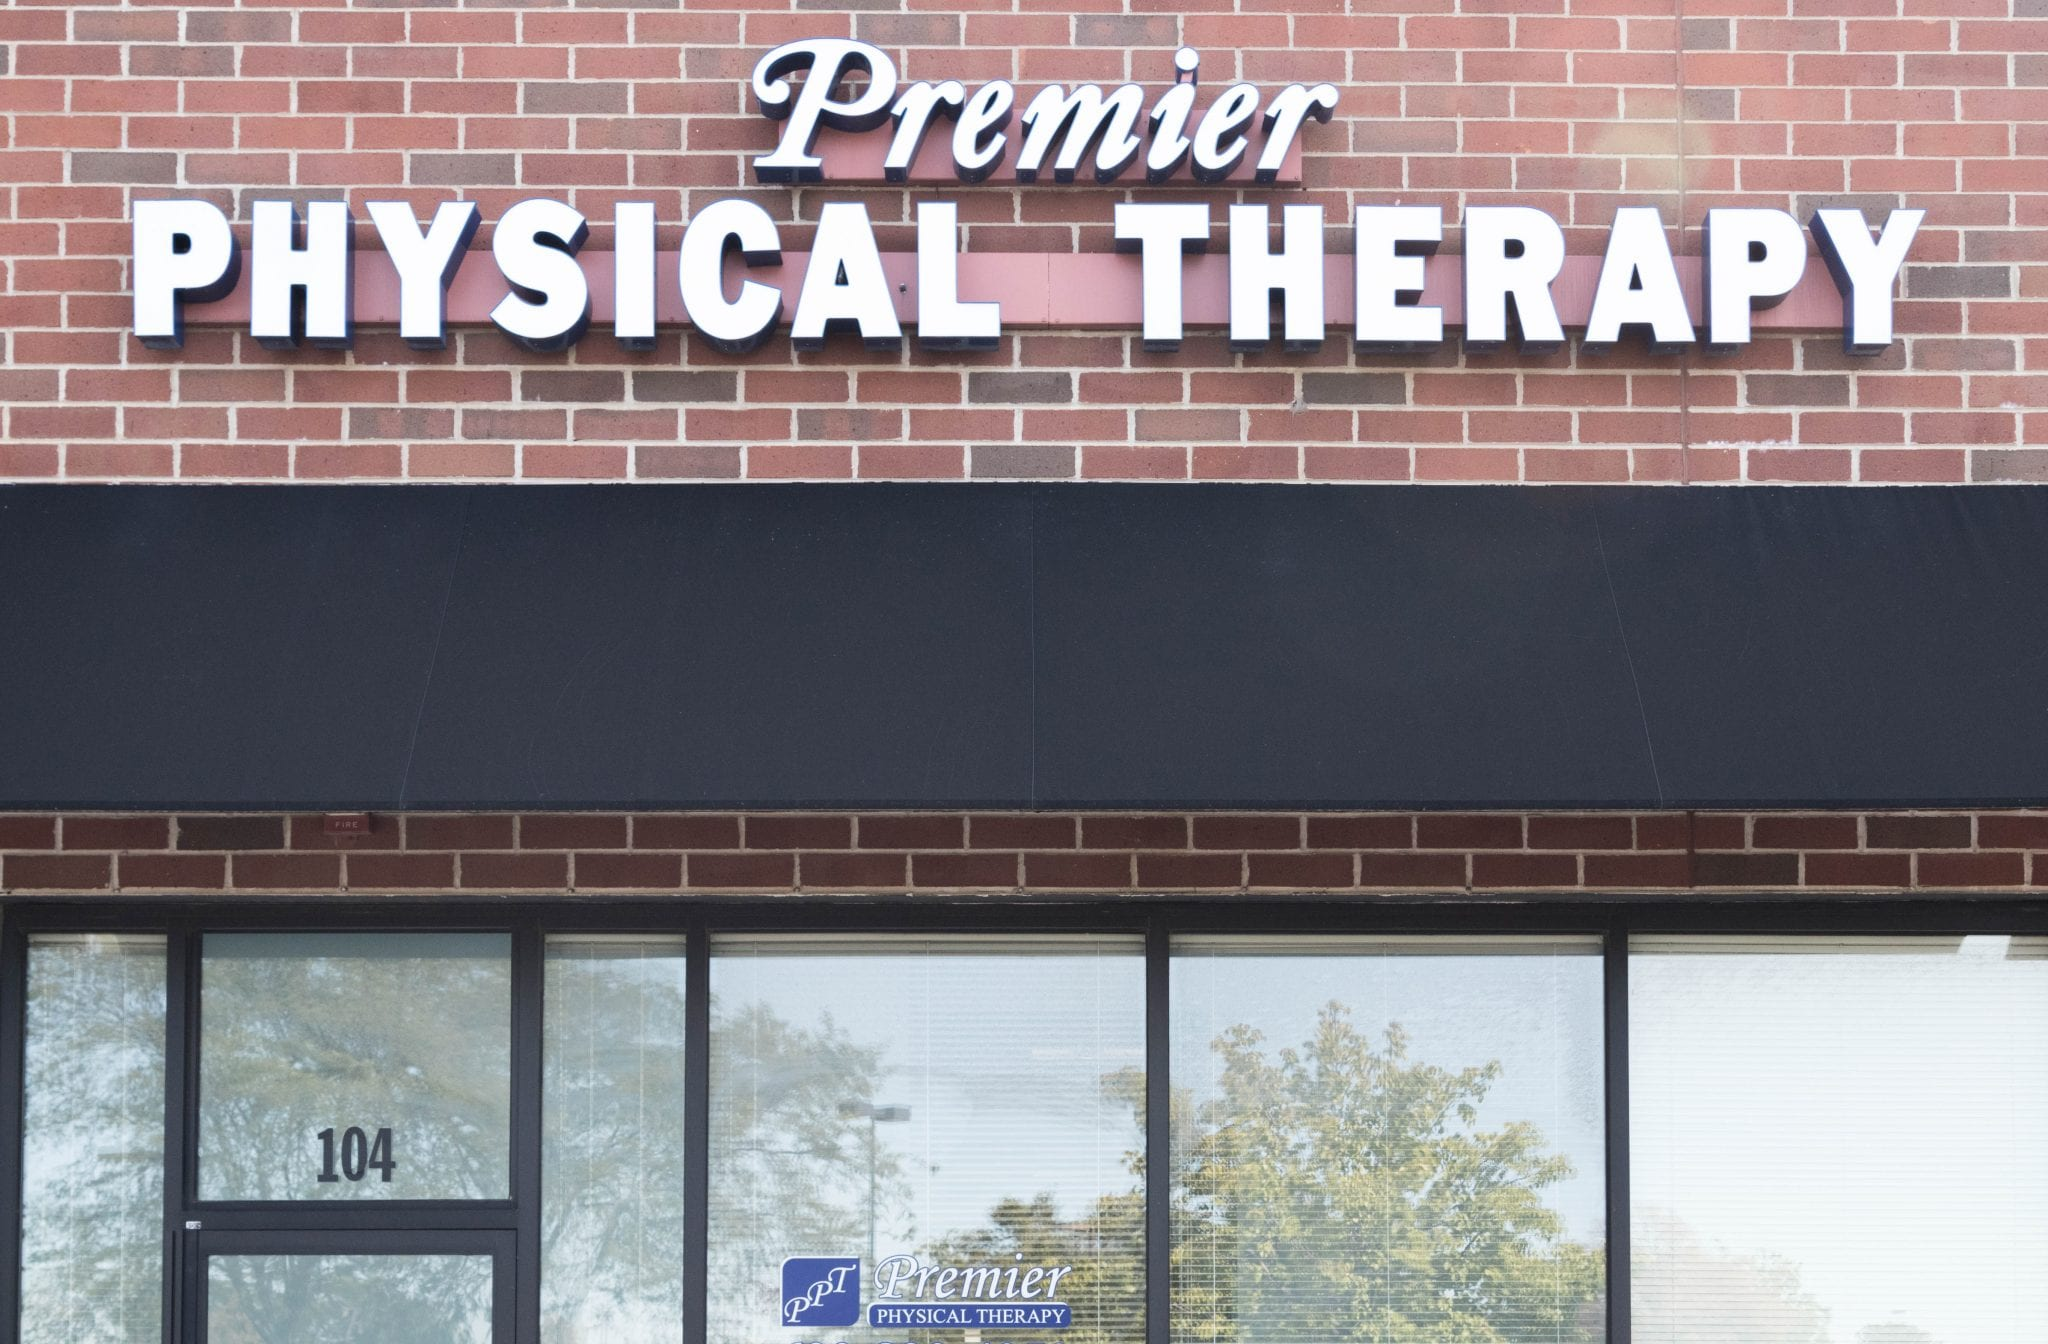 Physical Therapy in Aurora, IL